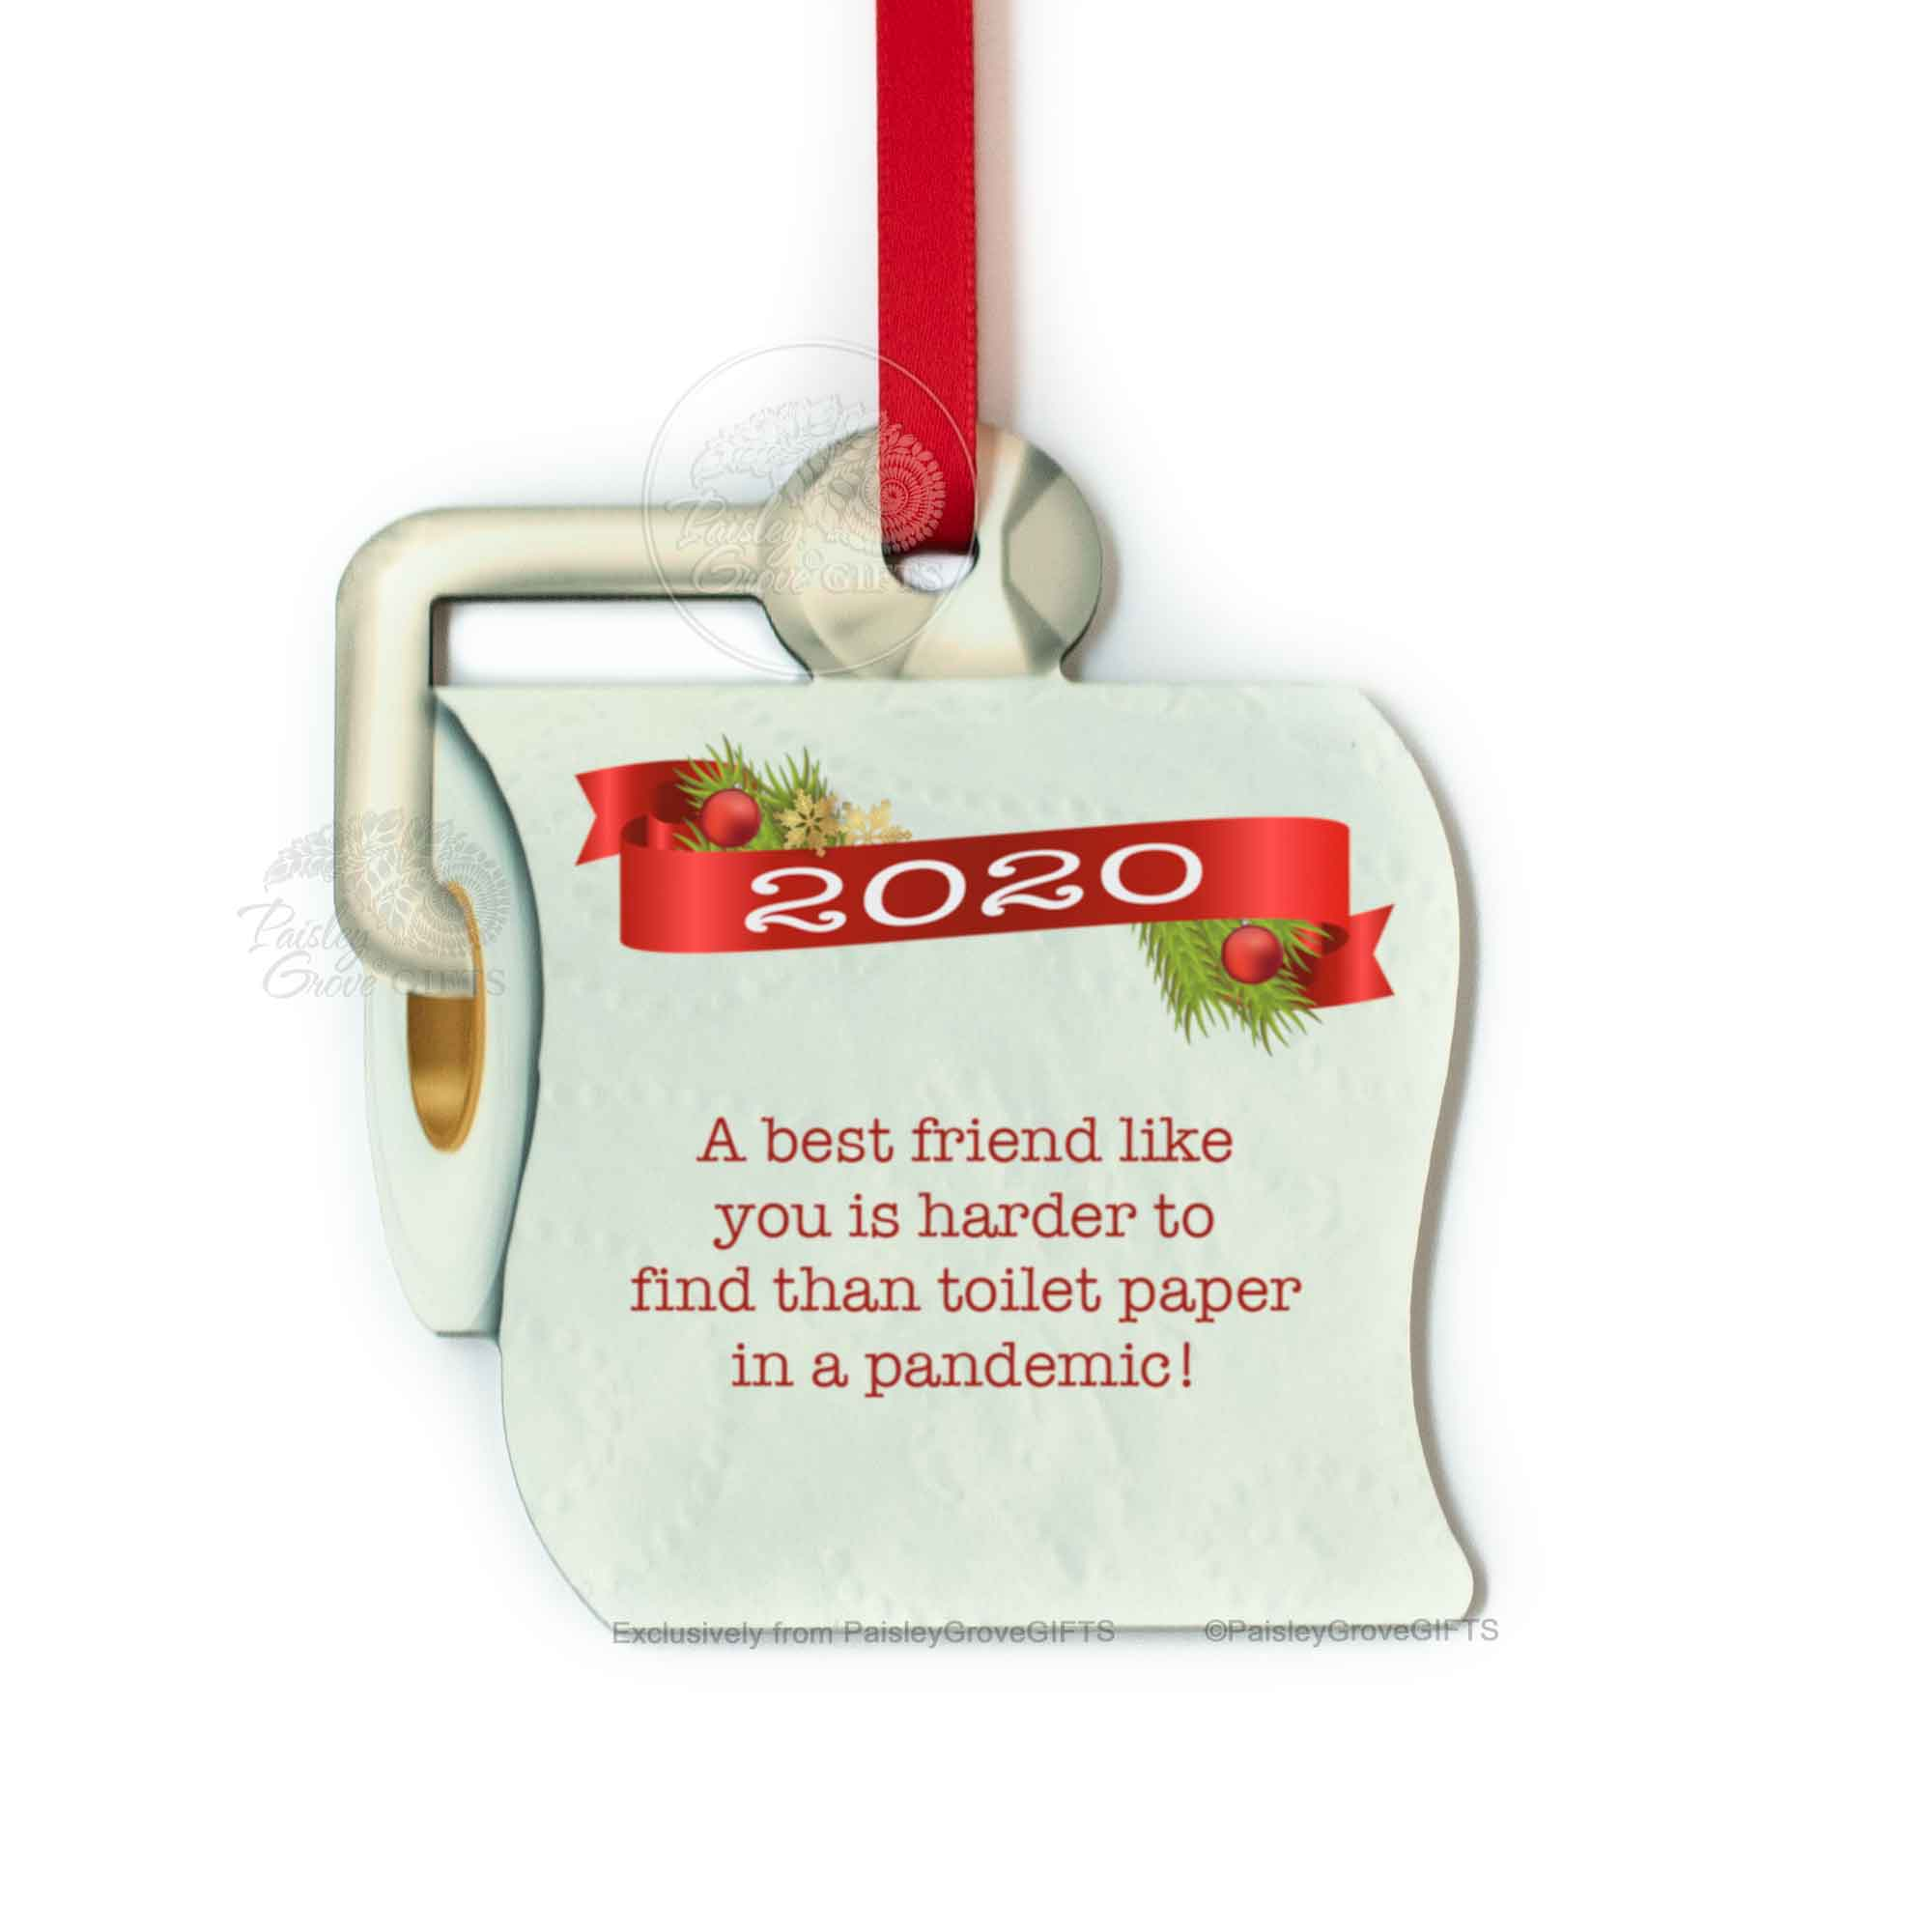 Copyright PaisleyGroveGIFTS S525k Funny Toilet Paper Best Friend Christmas Ornament 2020